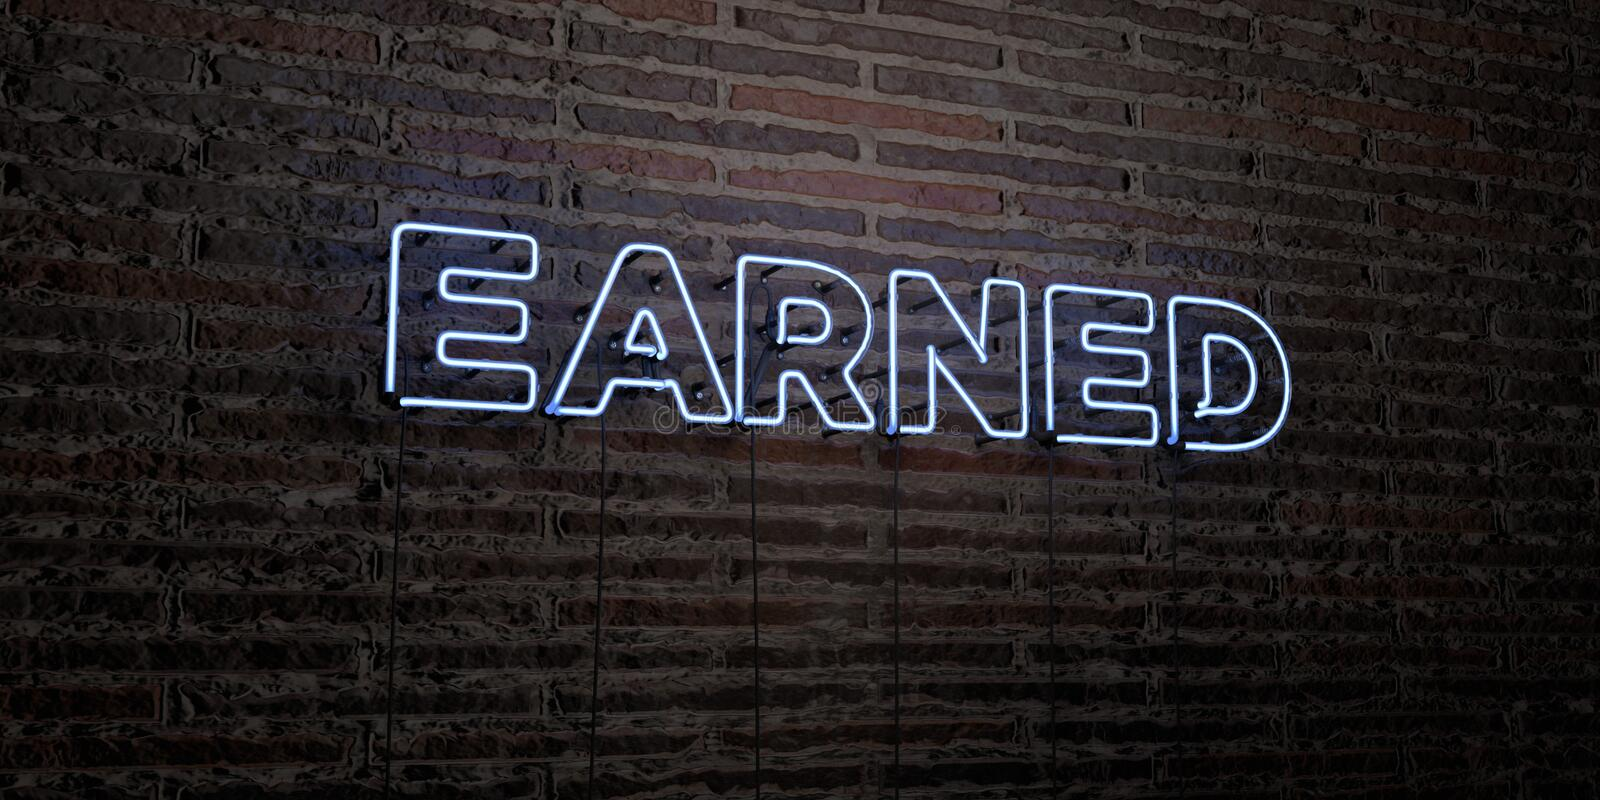 EARNED -Realistic Neon Sign on Brick Wall background - 3D rendered royalty free stock image stock illustration